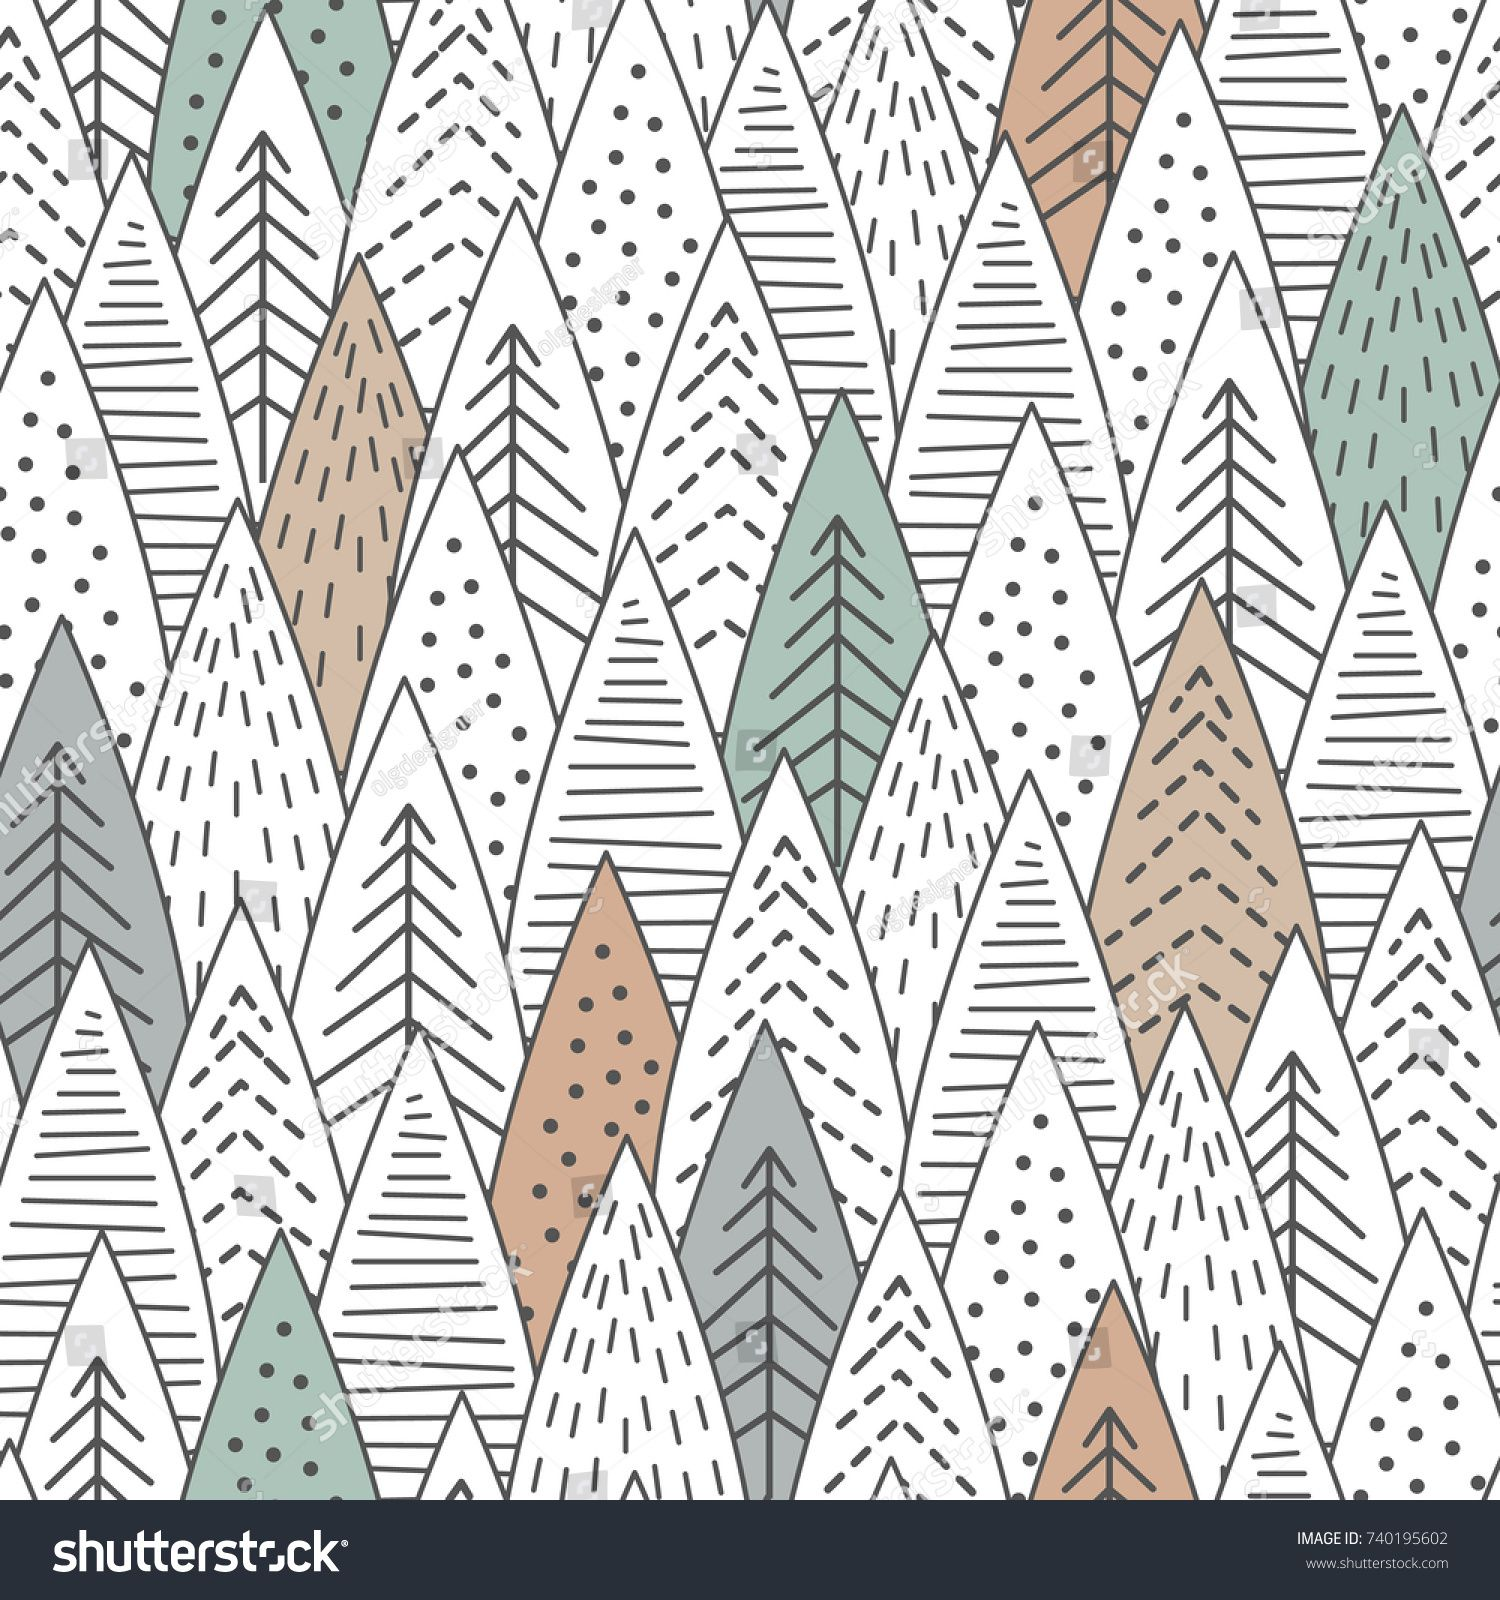 Winter Forest Seamless Pattern Graphical Lines And Coloring Scandinavian Style Vector Ill Scandinavian Design Pattern Scandinavian Pattern Seamless Patterns